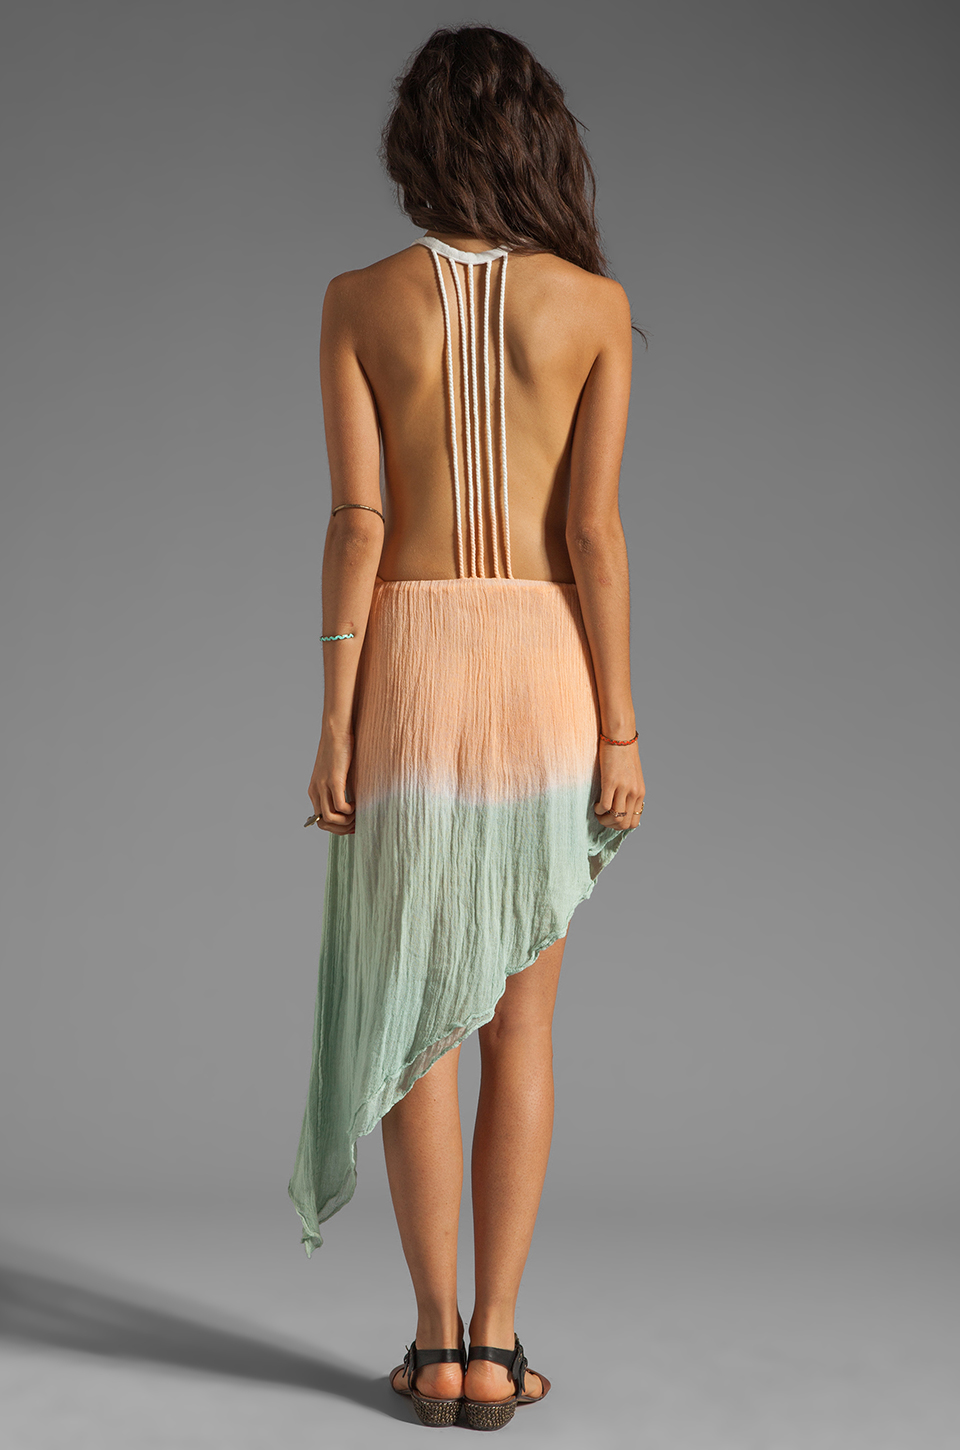 Jen's Pirate Booty San Pancho Backless Gown in Fade #2